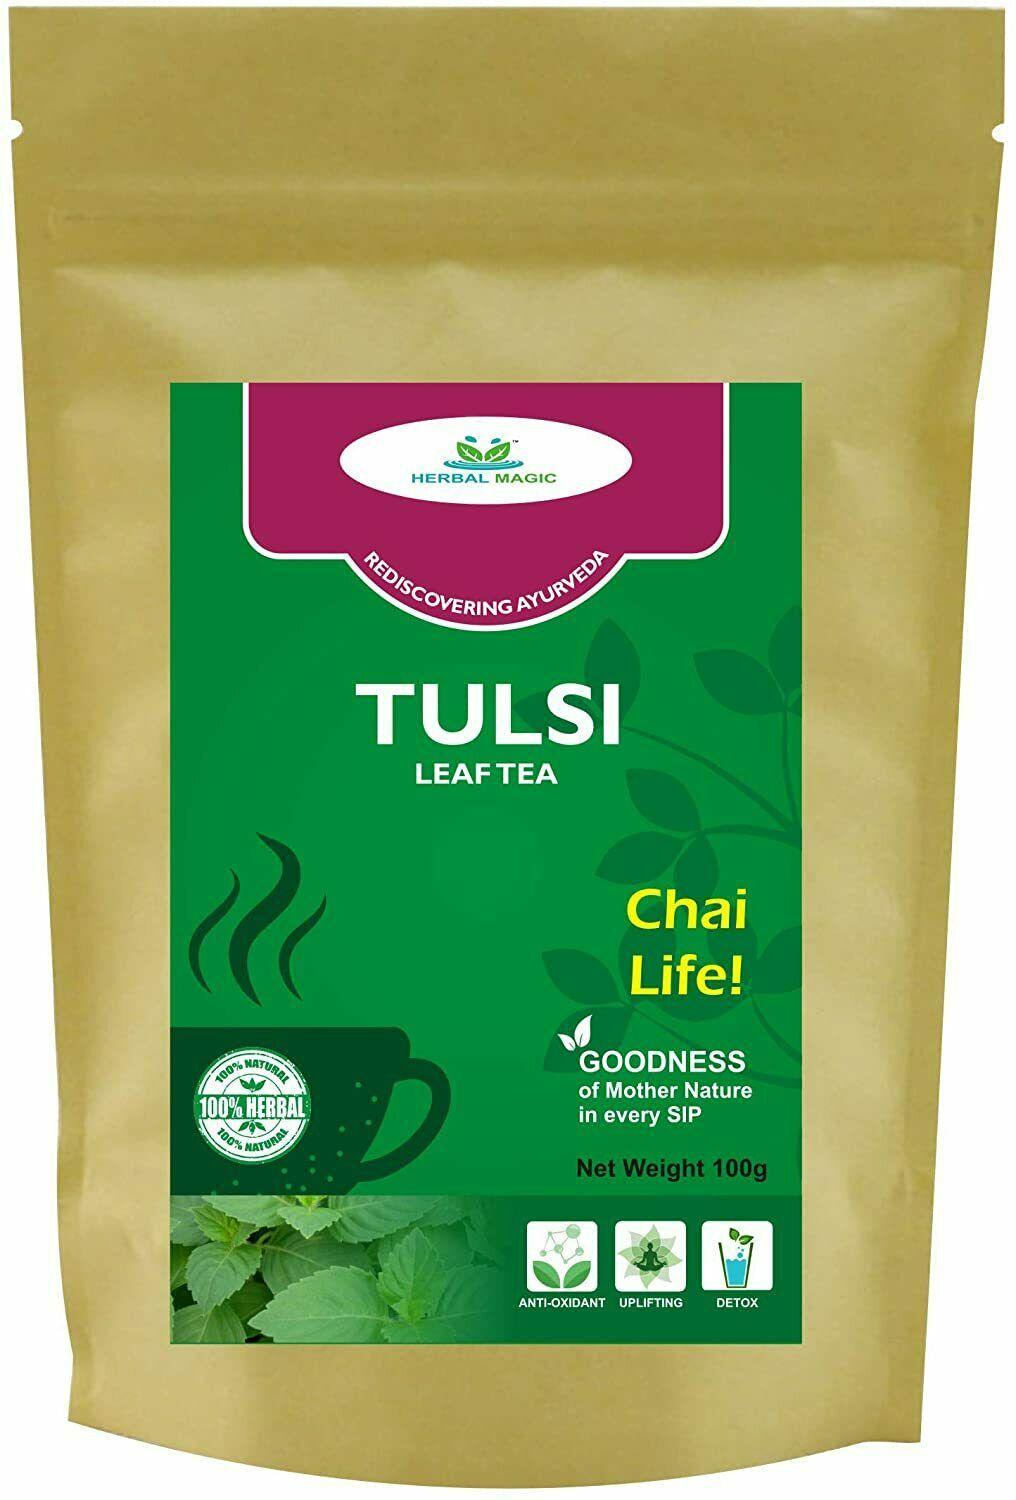 Tulsi Herb Tea Cuts Energizing Drink Antioxidants Rich Herbal BeverageListed for charity